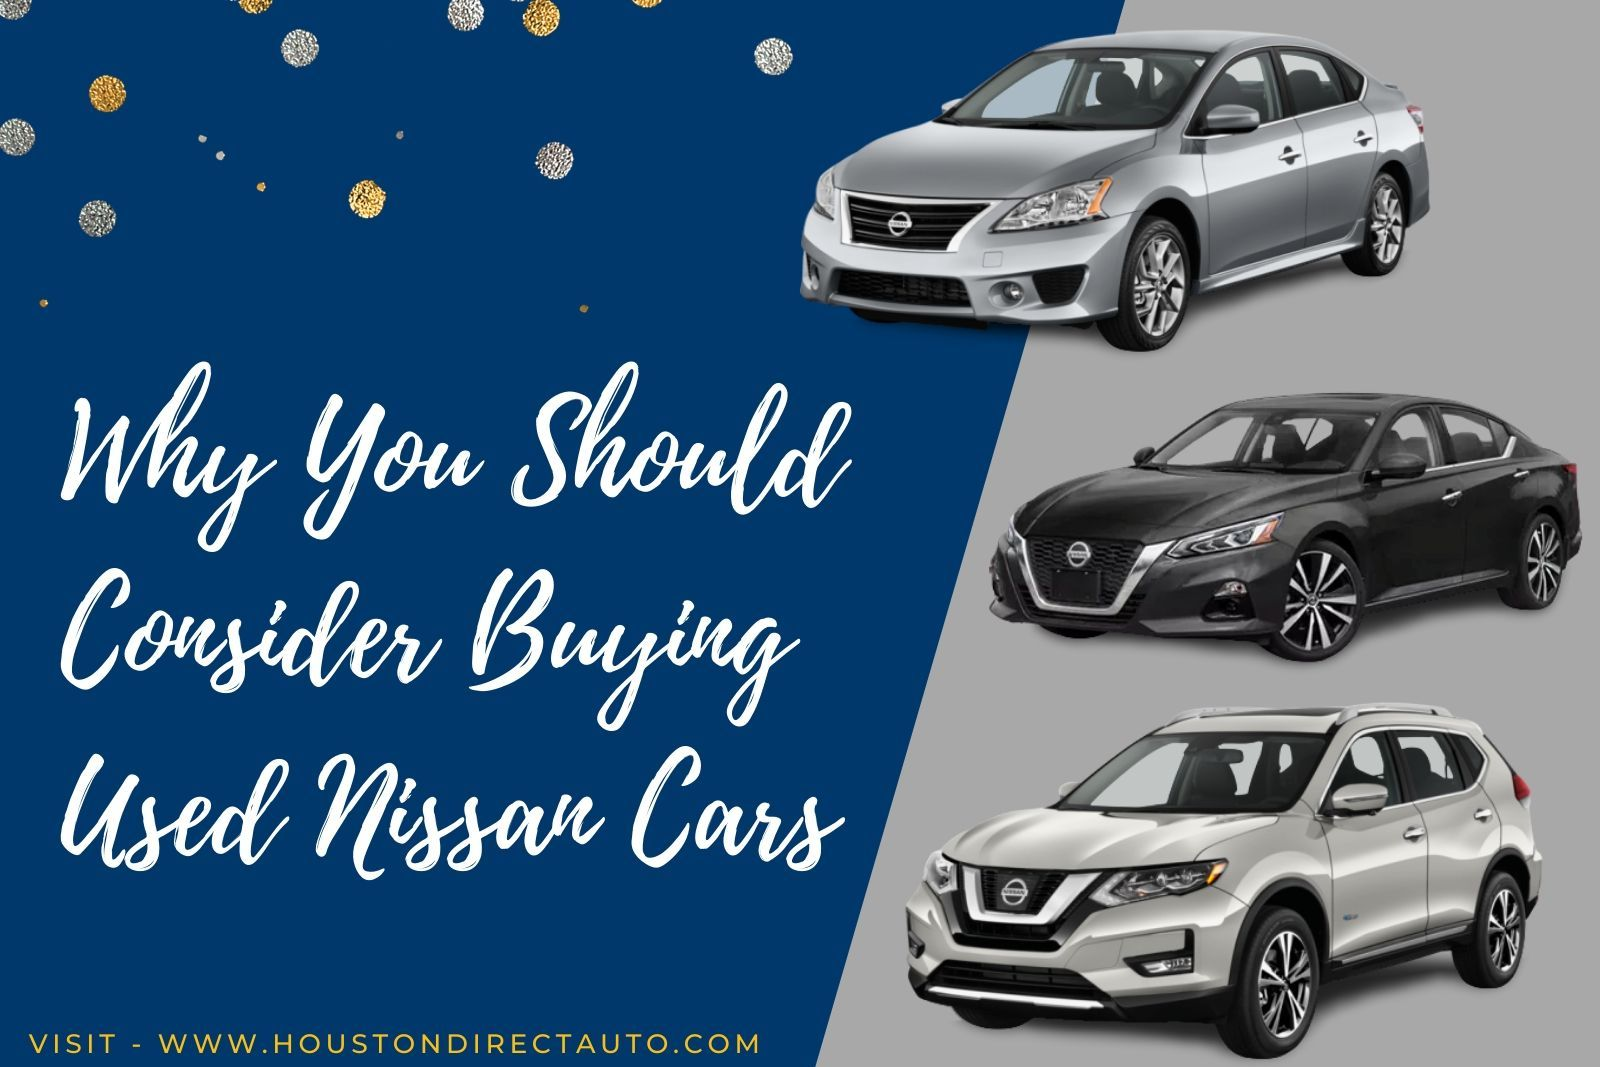 Reasons To Buy Nissan Used Cars In America Nissan Nissan Cars Car Dealership